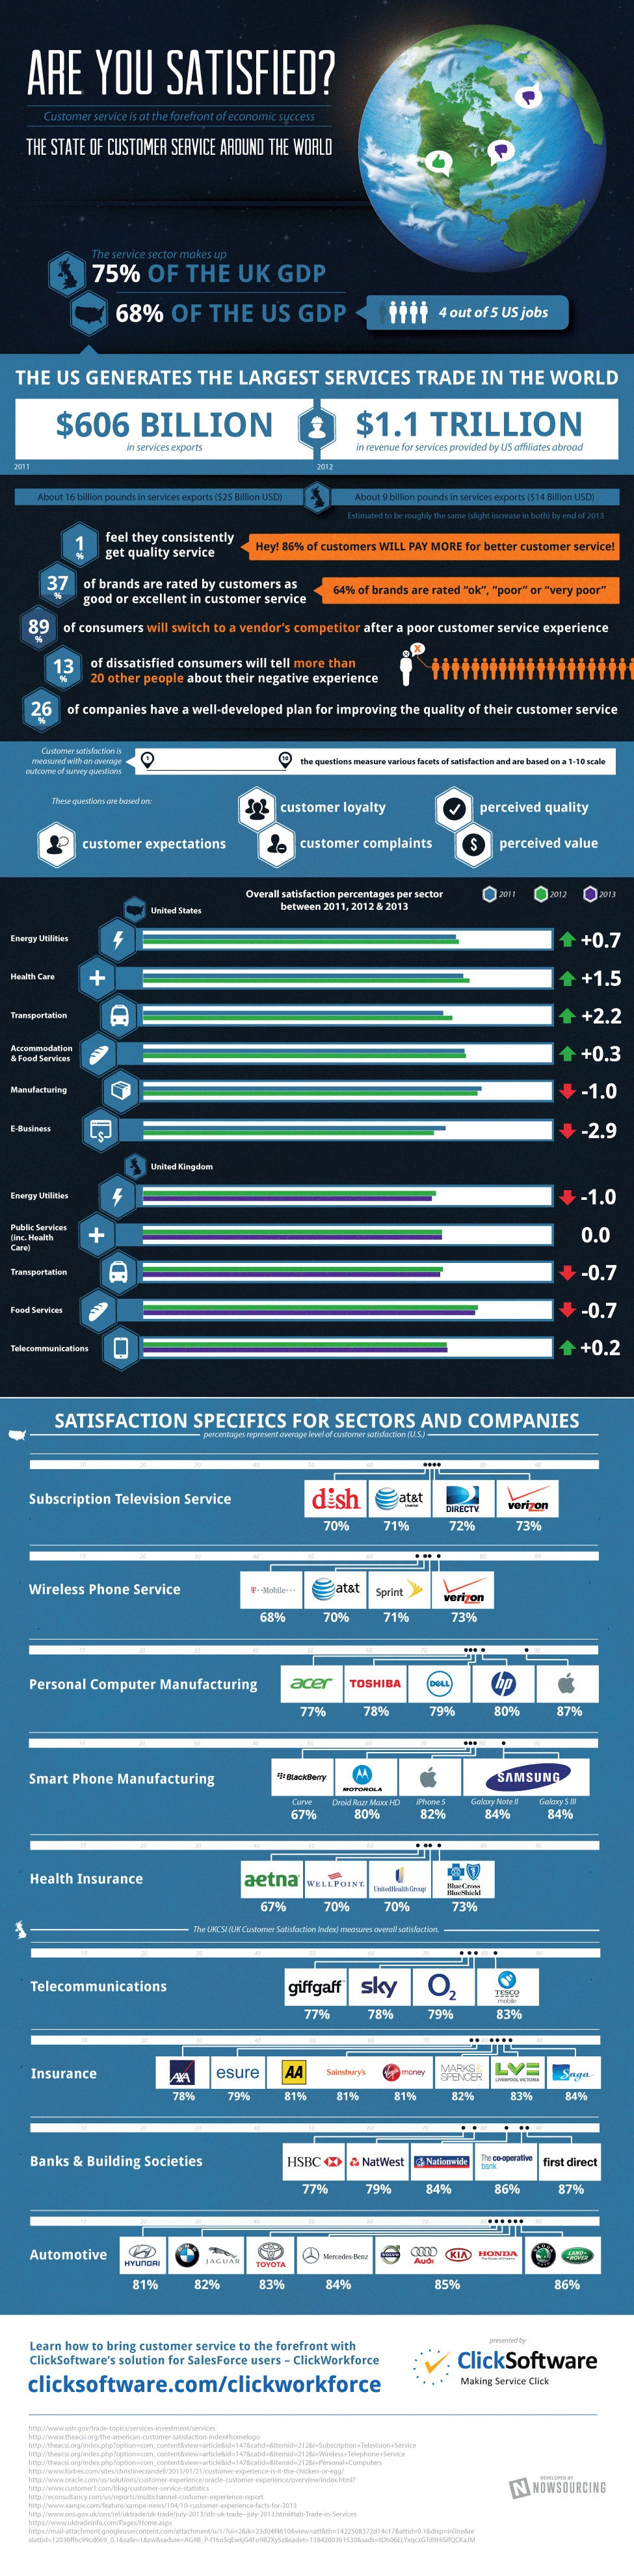 9 in 10 Customers Will Switch to the Competition If You Don't Treat Them Well (Infographic)